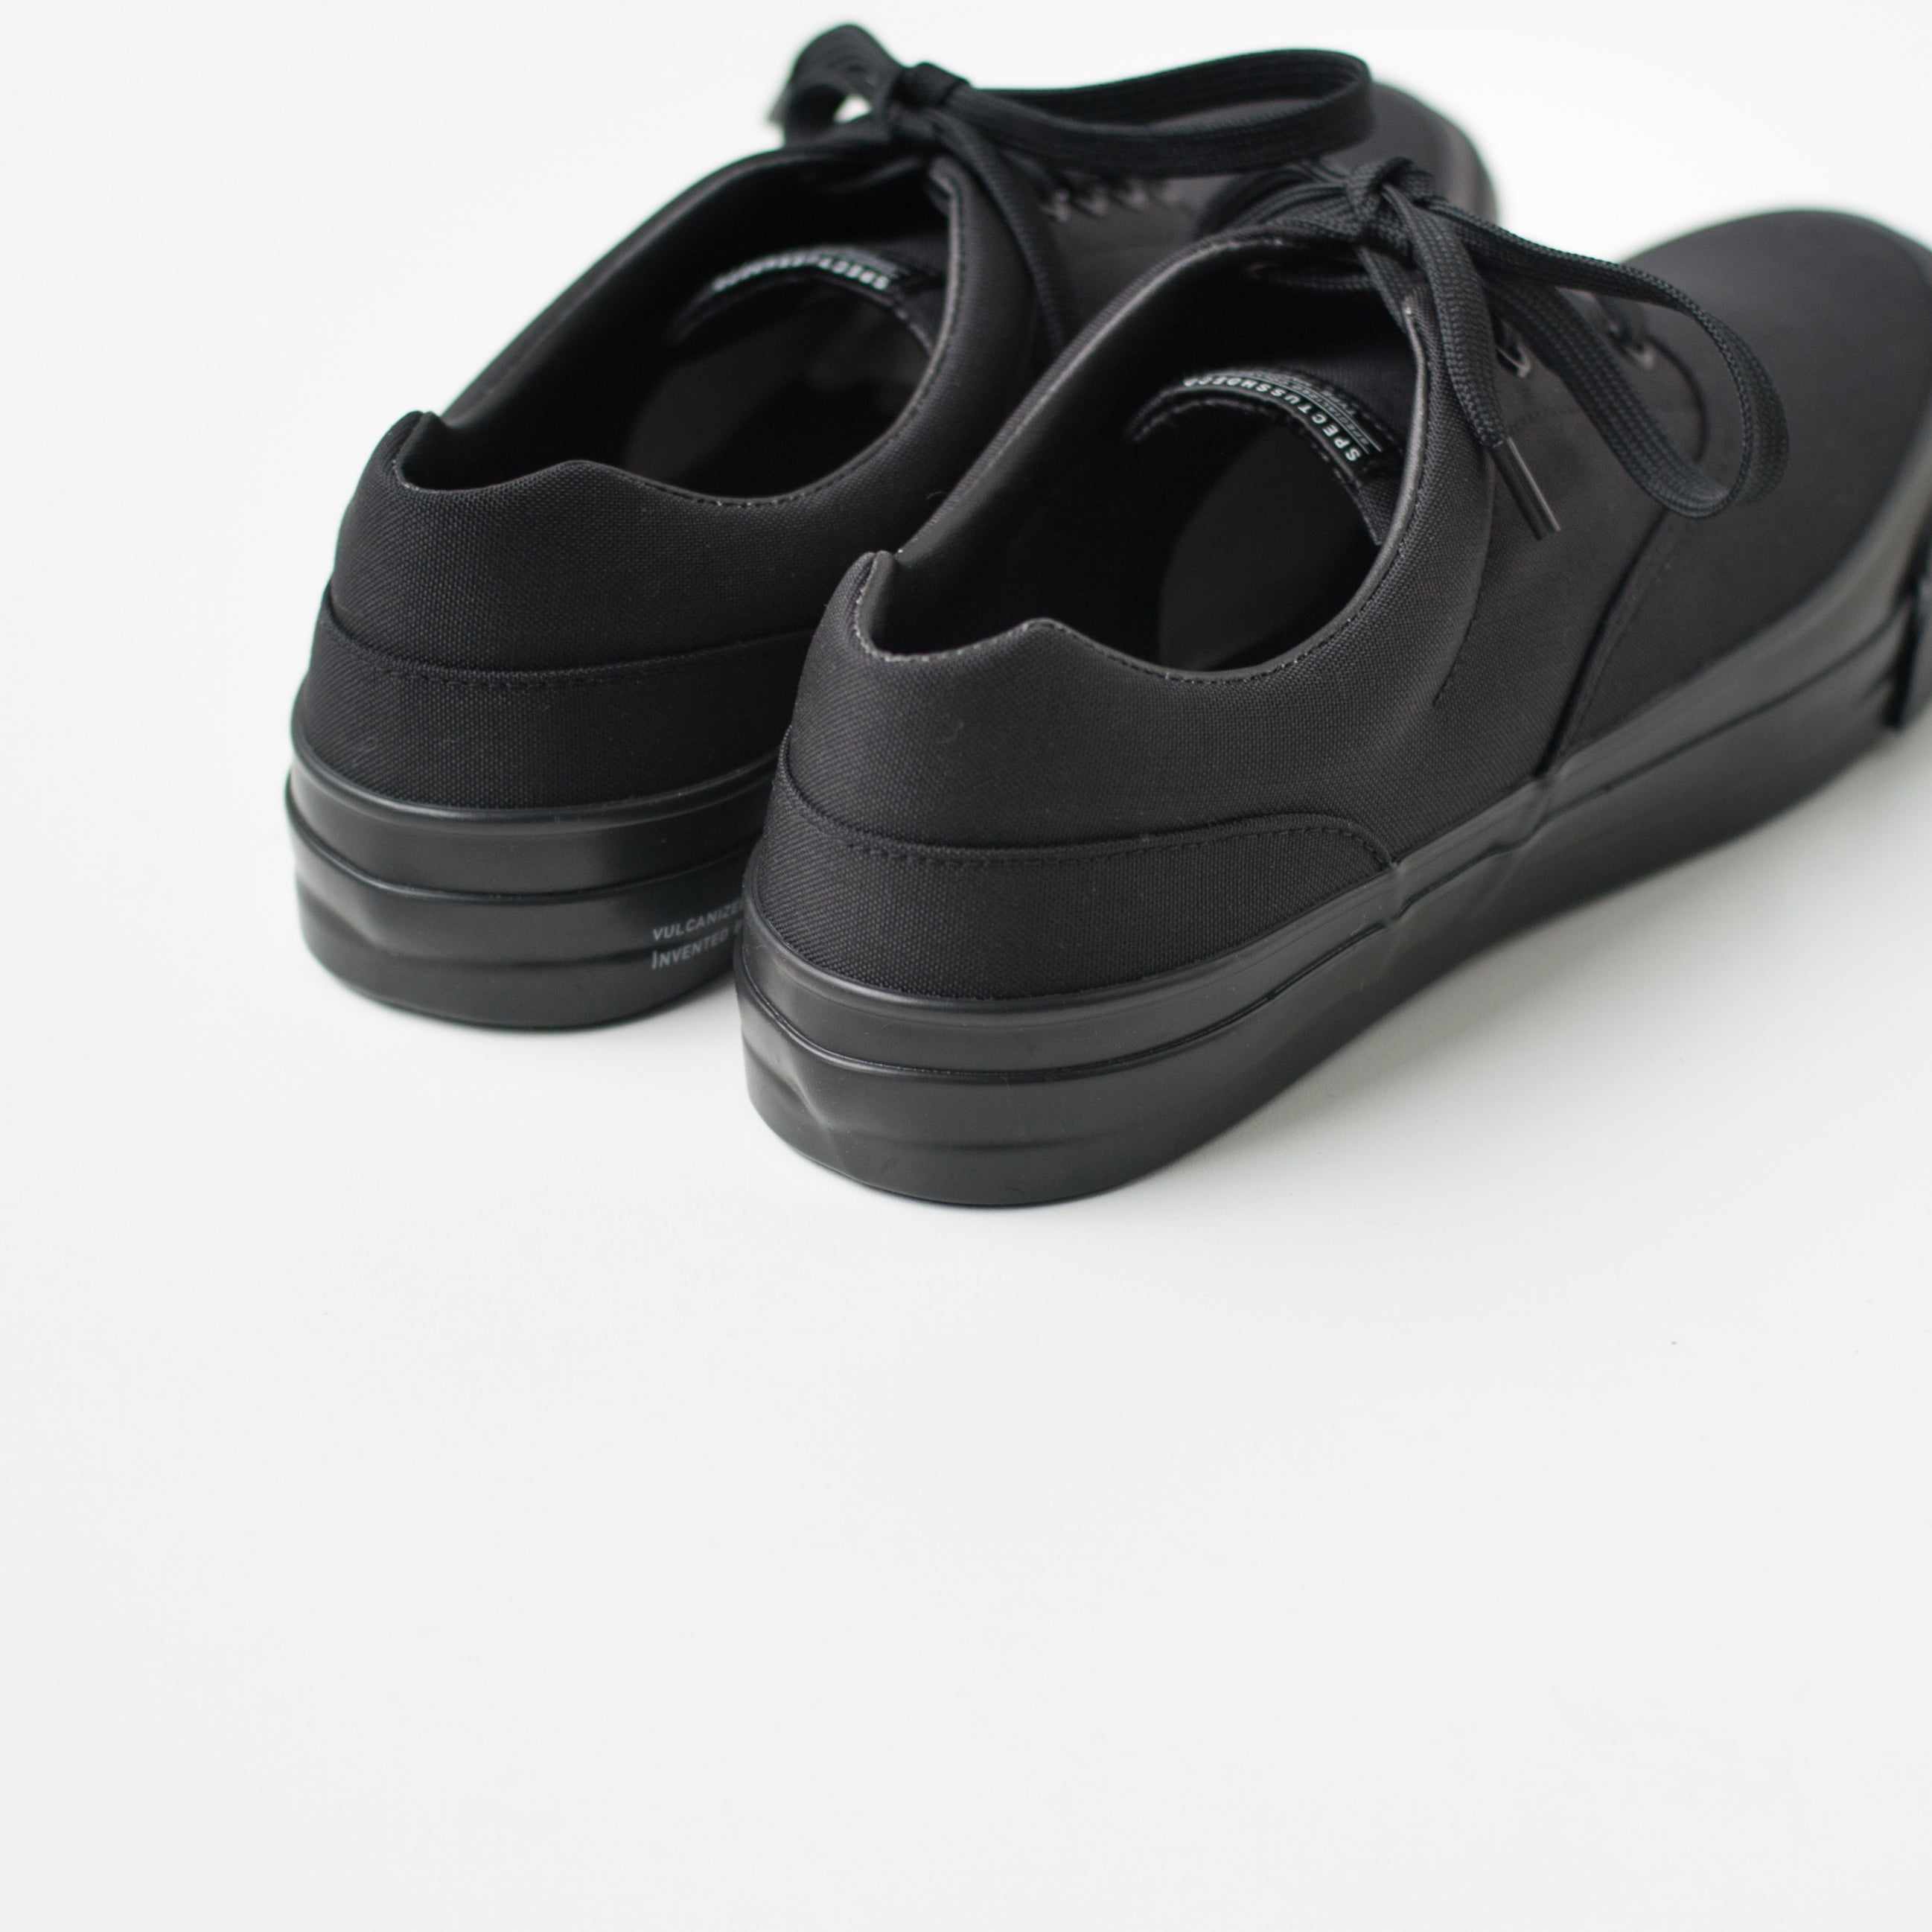 SOLID KICKS NO.2 - BLACK/BLACK